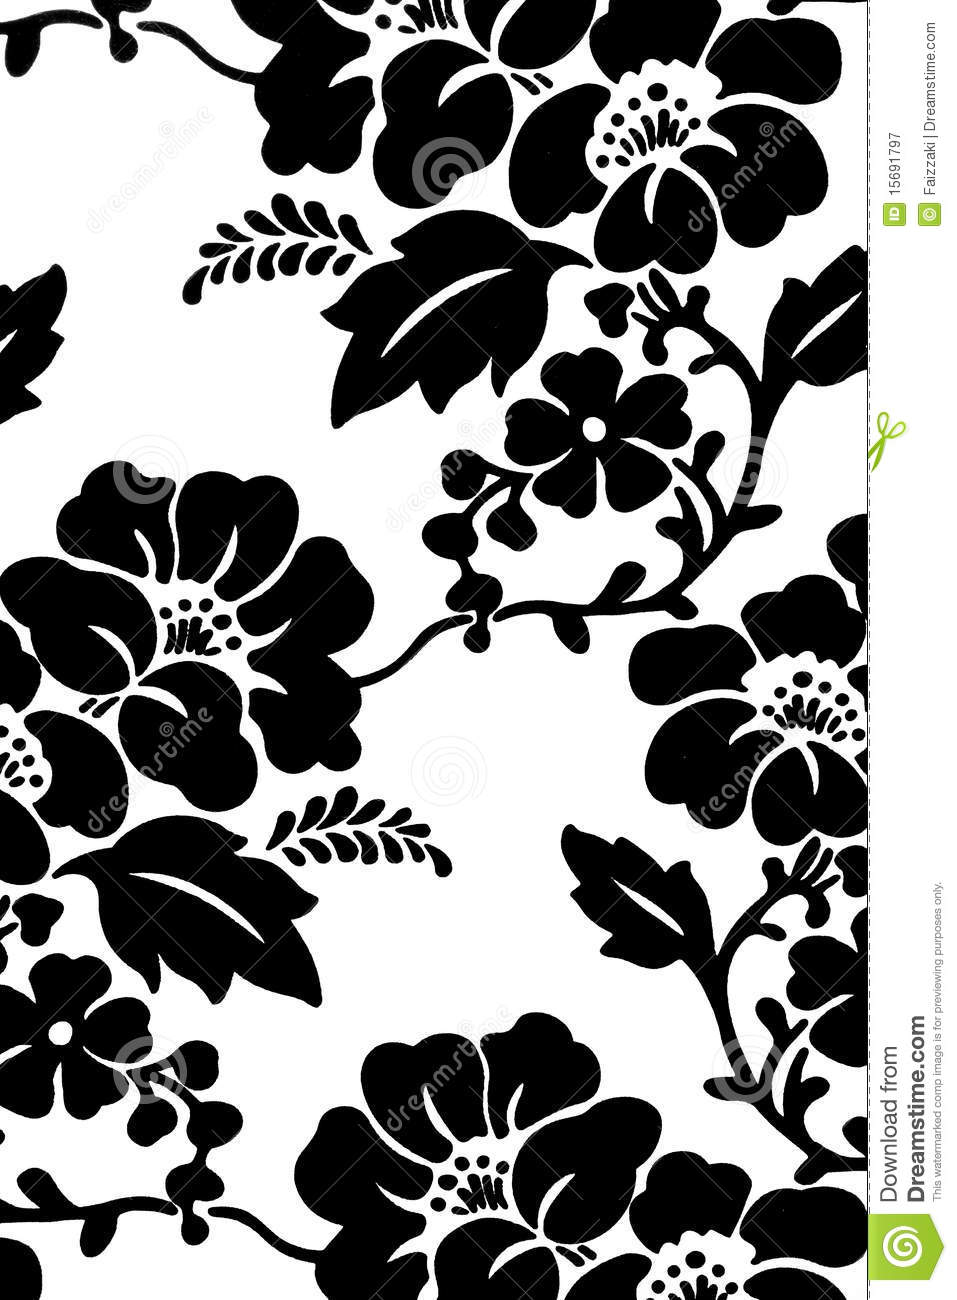 Hibiscus flower in black white stock illustration illustration hibiscus flower in black white izmirmasajfo